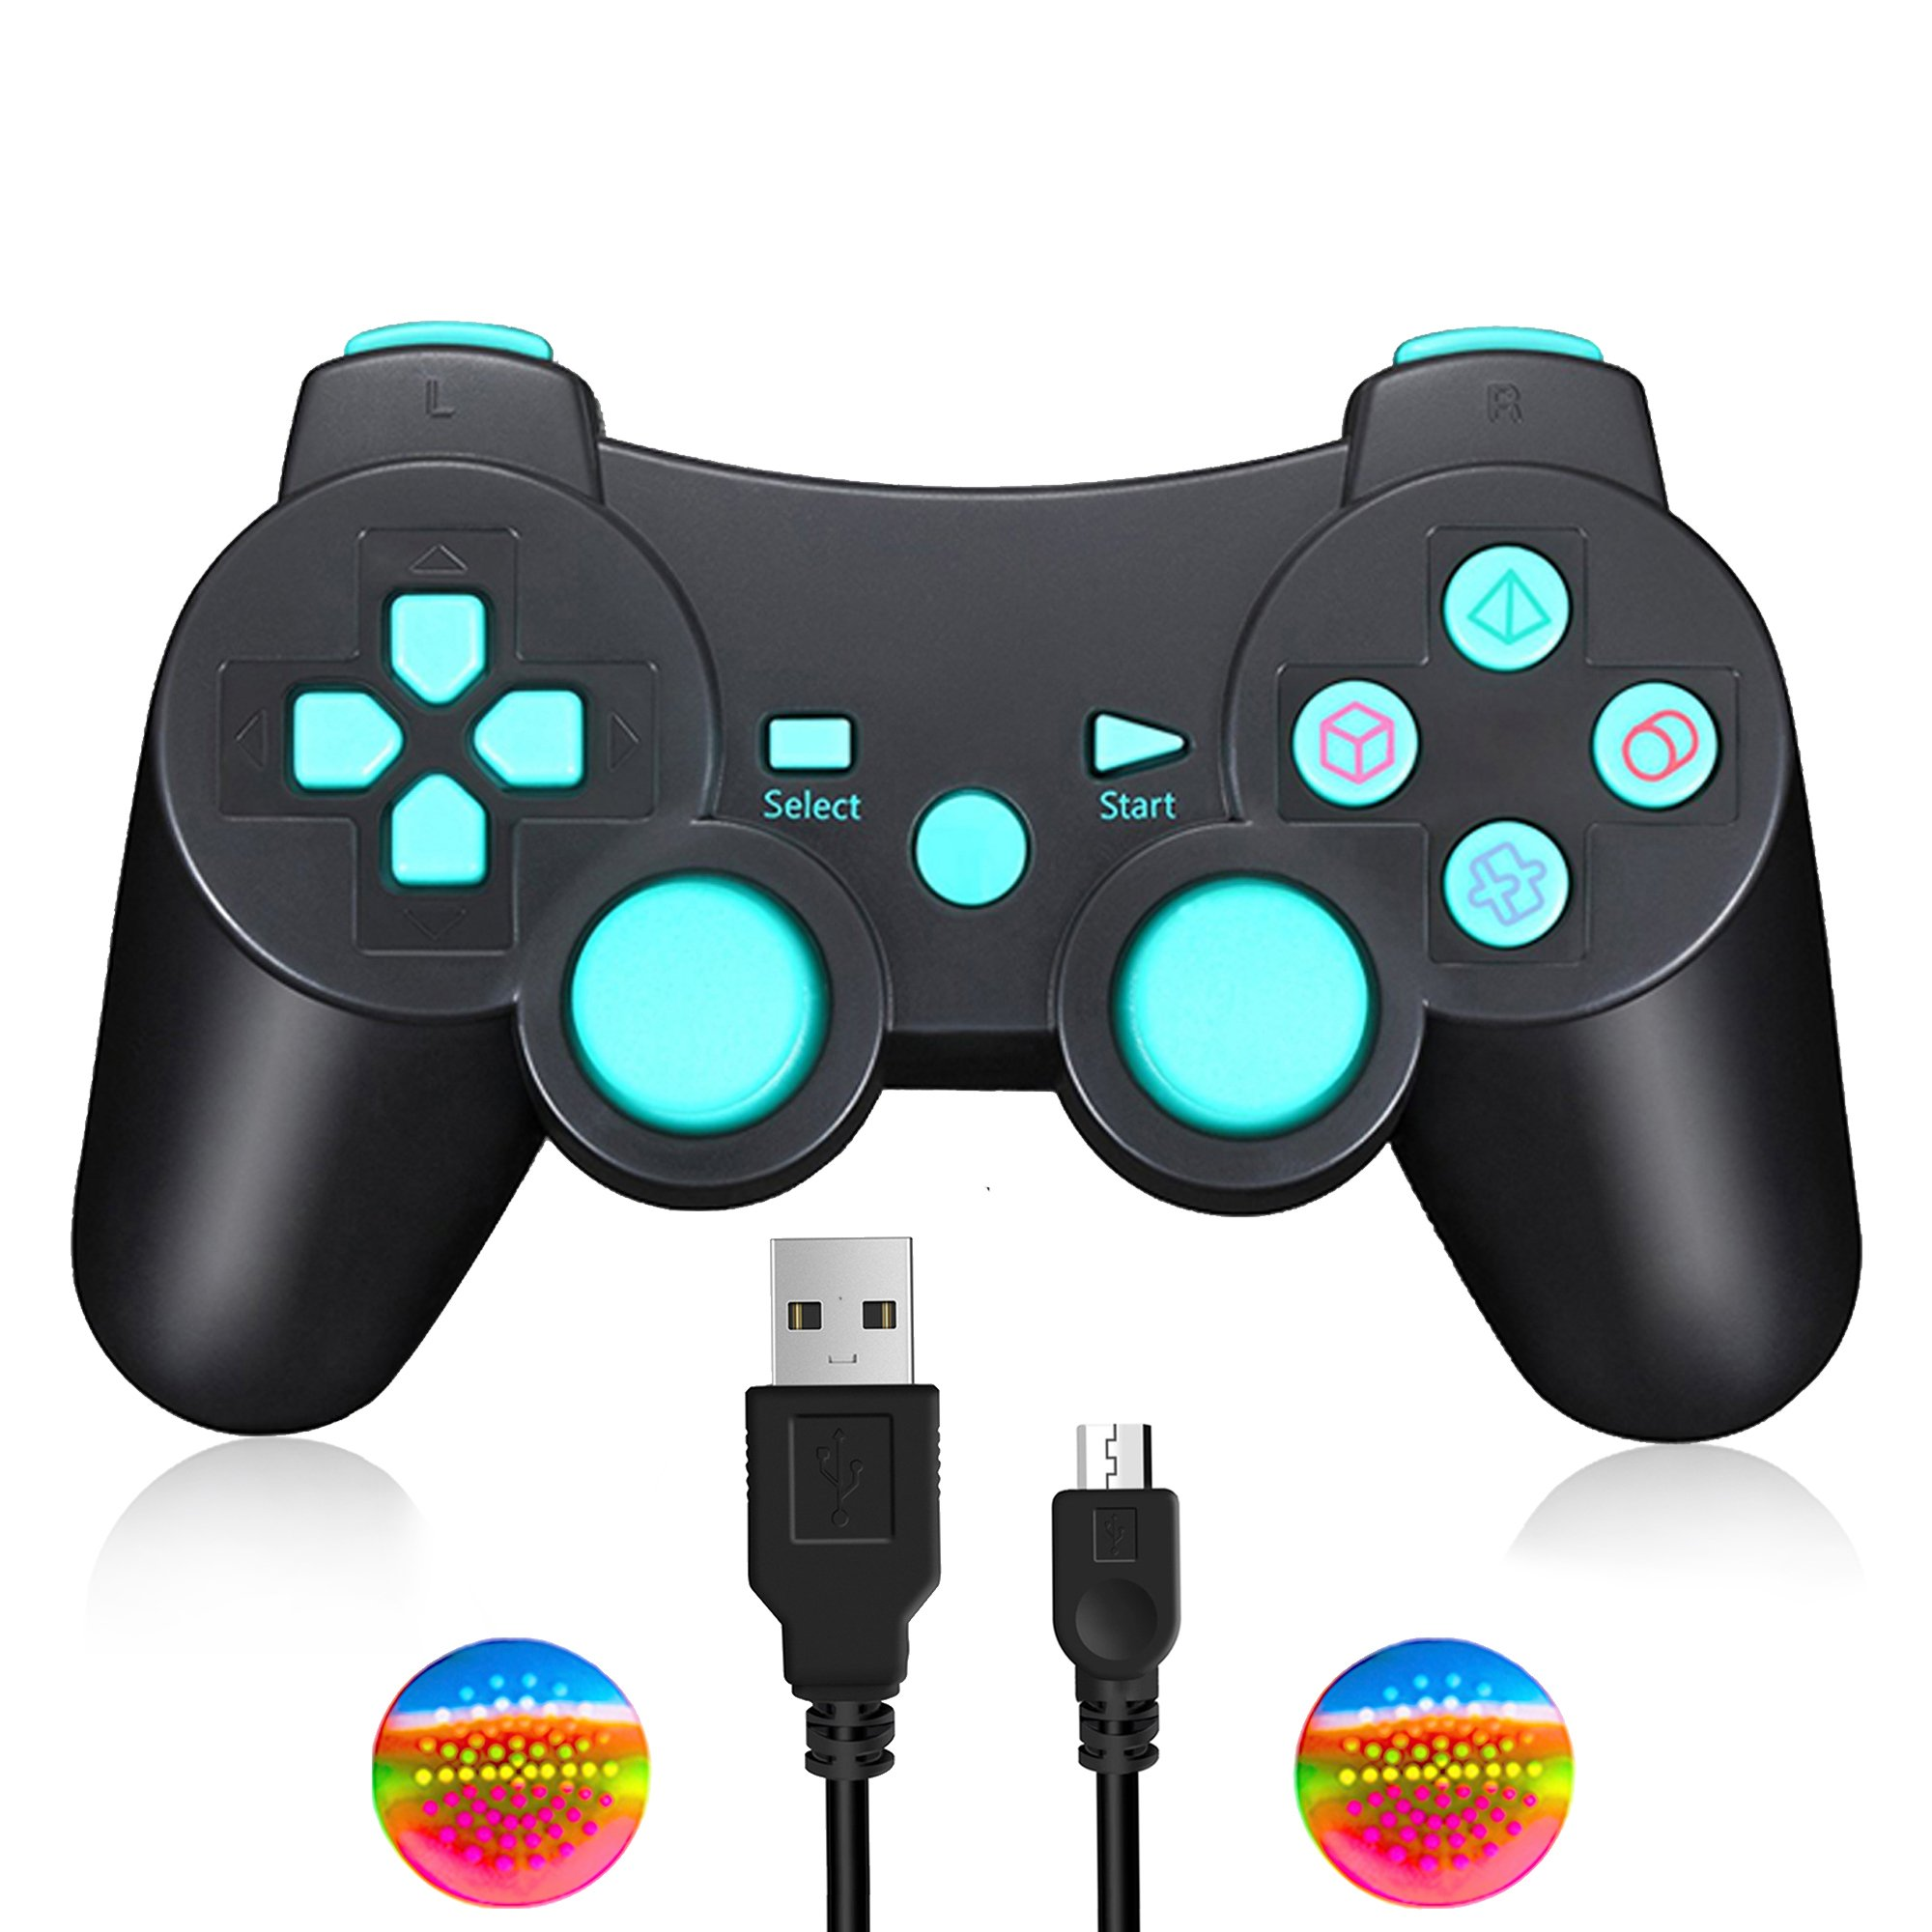 TPFOON Wireless Controller Dual Shock Gamepad Compatible with Sony PS3 / Raspberry Pi 3, SIXAXIS Joypad Remote for Sony Playstation 3 DualShock 3 - Charge and Play Cable Included